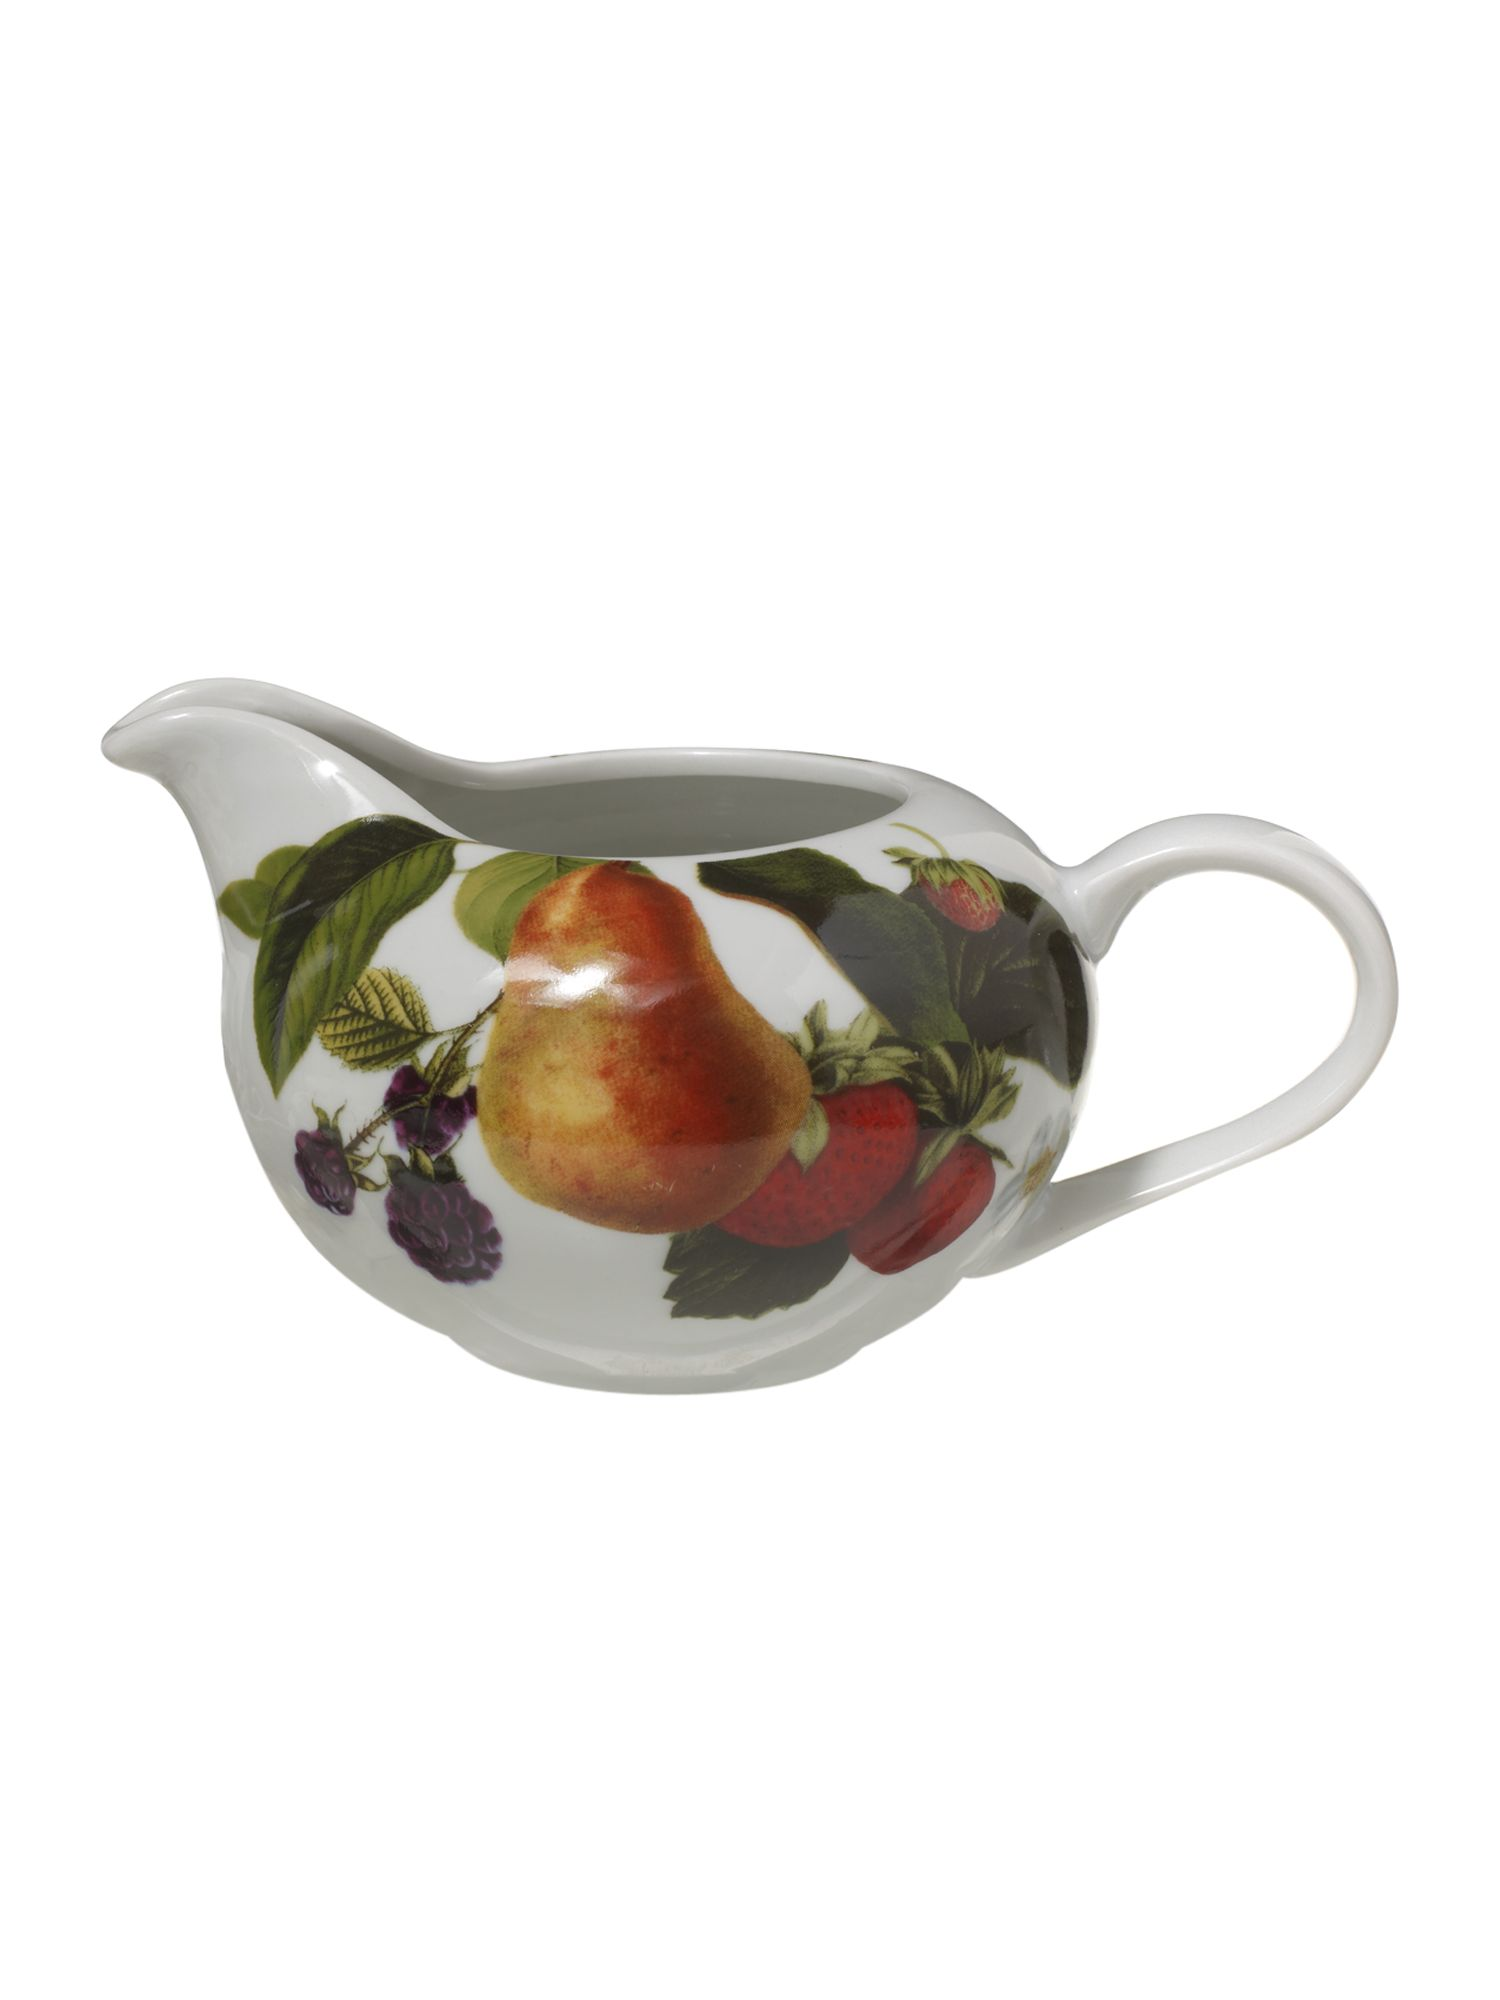 Botanical fruits creamer